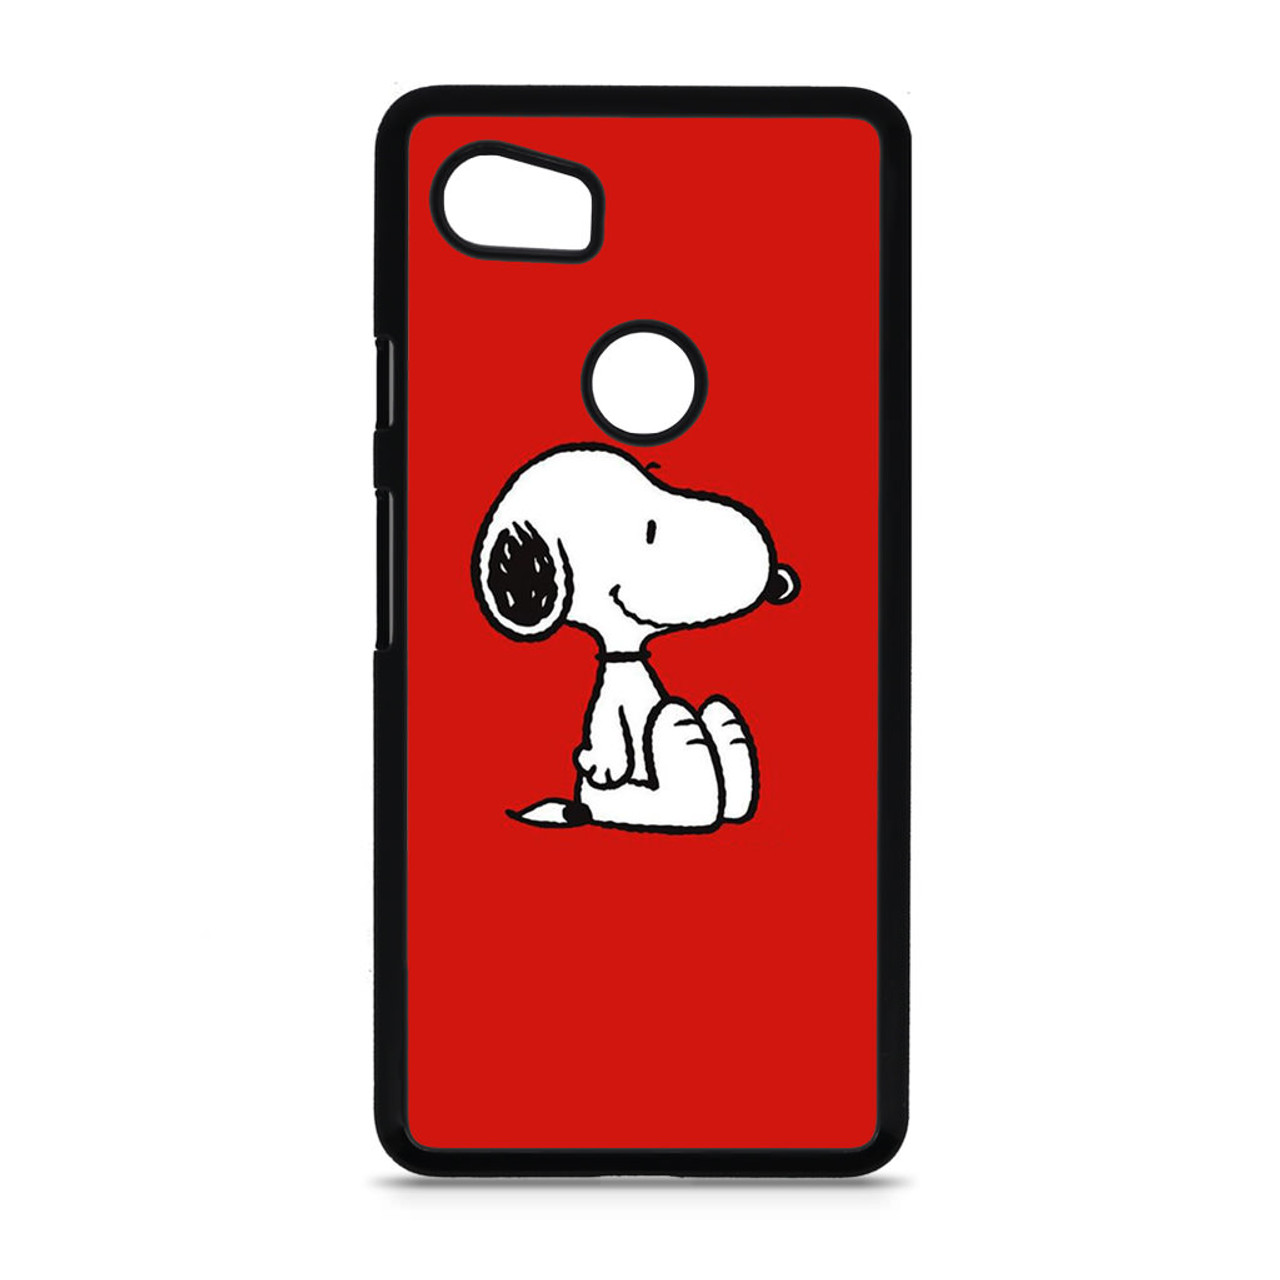 brand new 0087e 3a0d6 Snoopy Red Google Pixel 2 XL Case